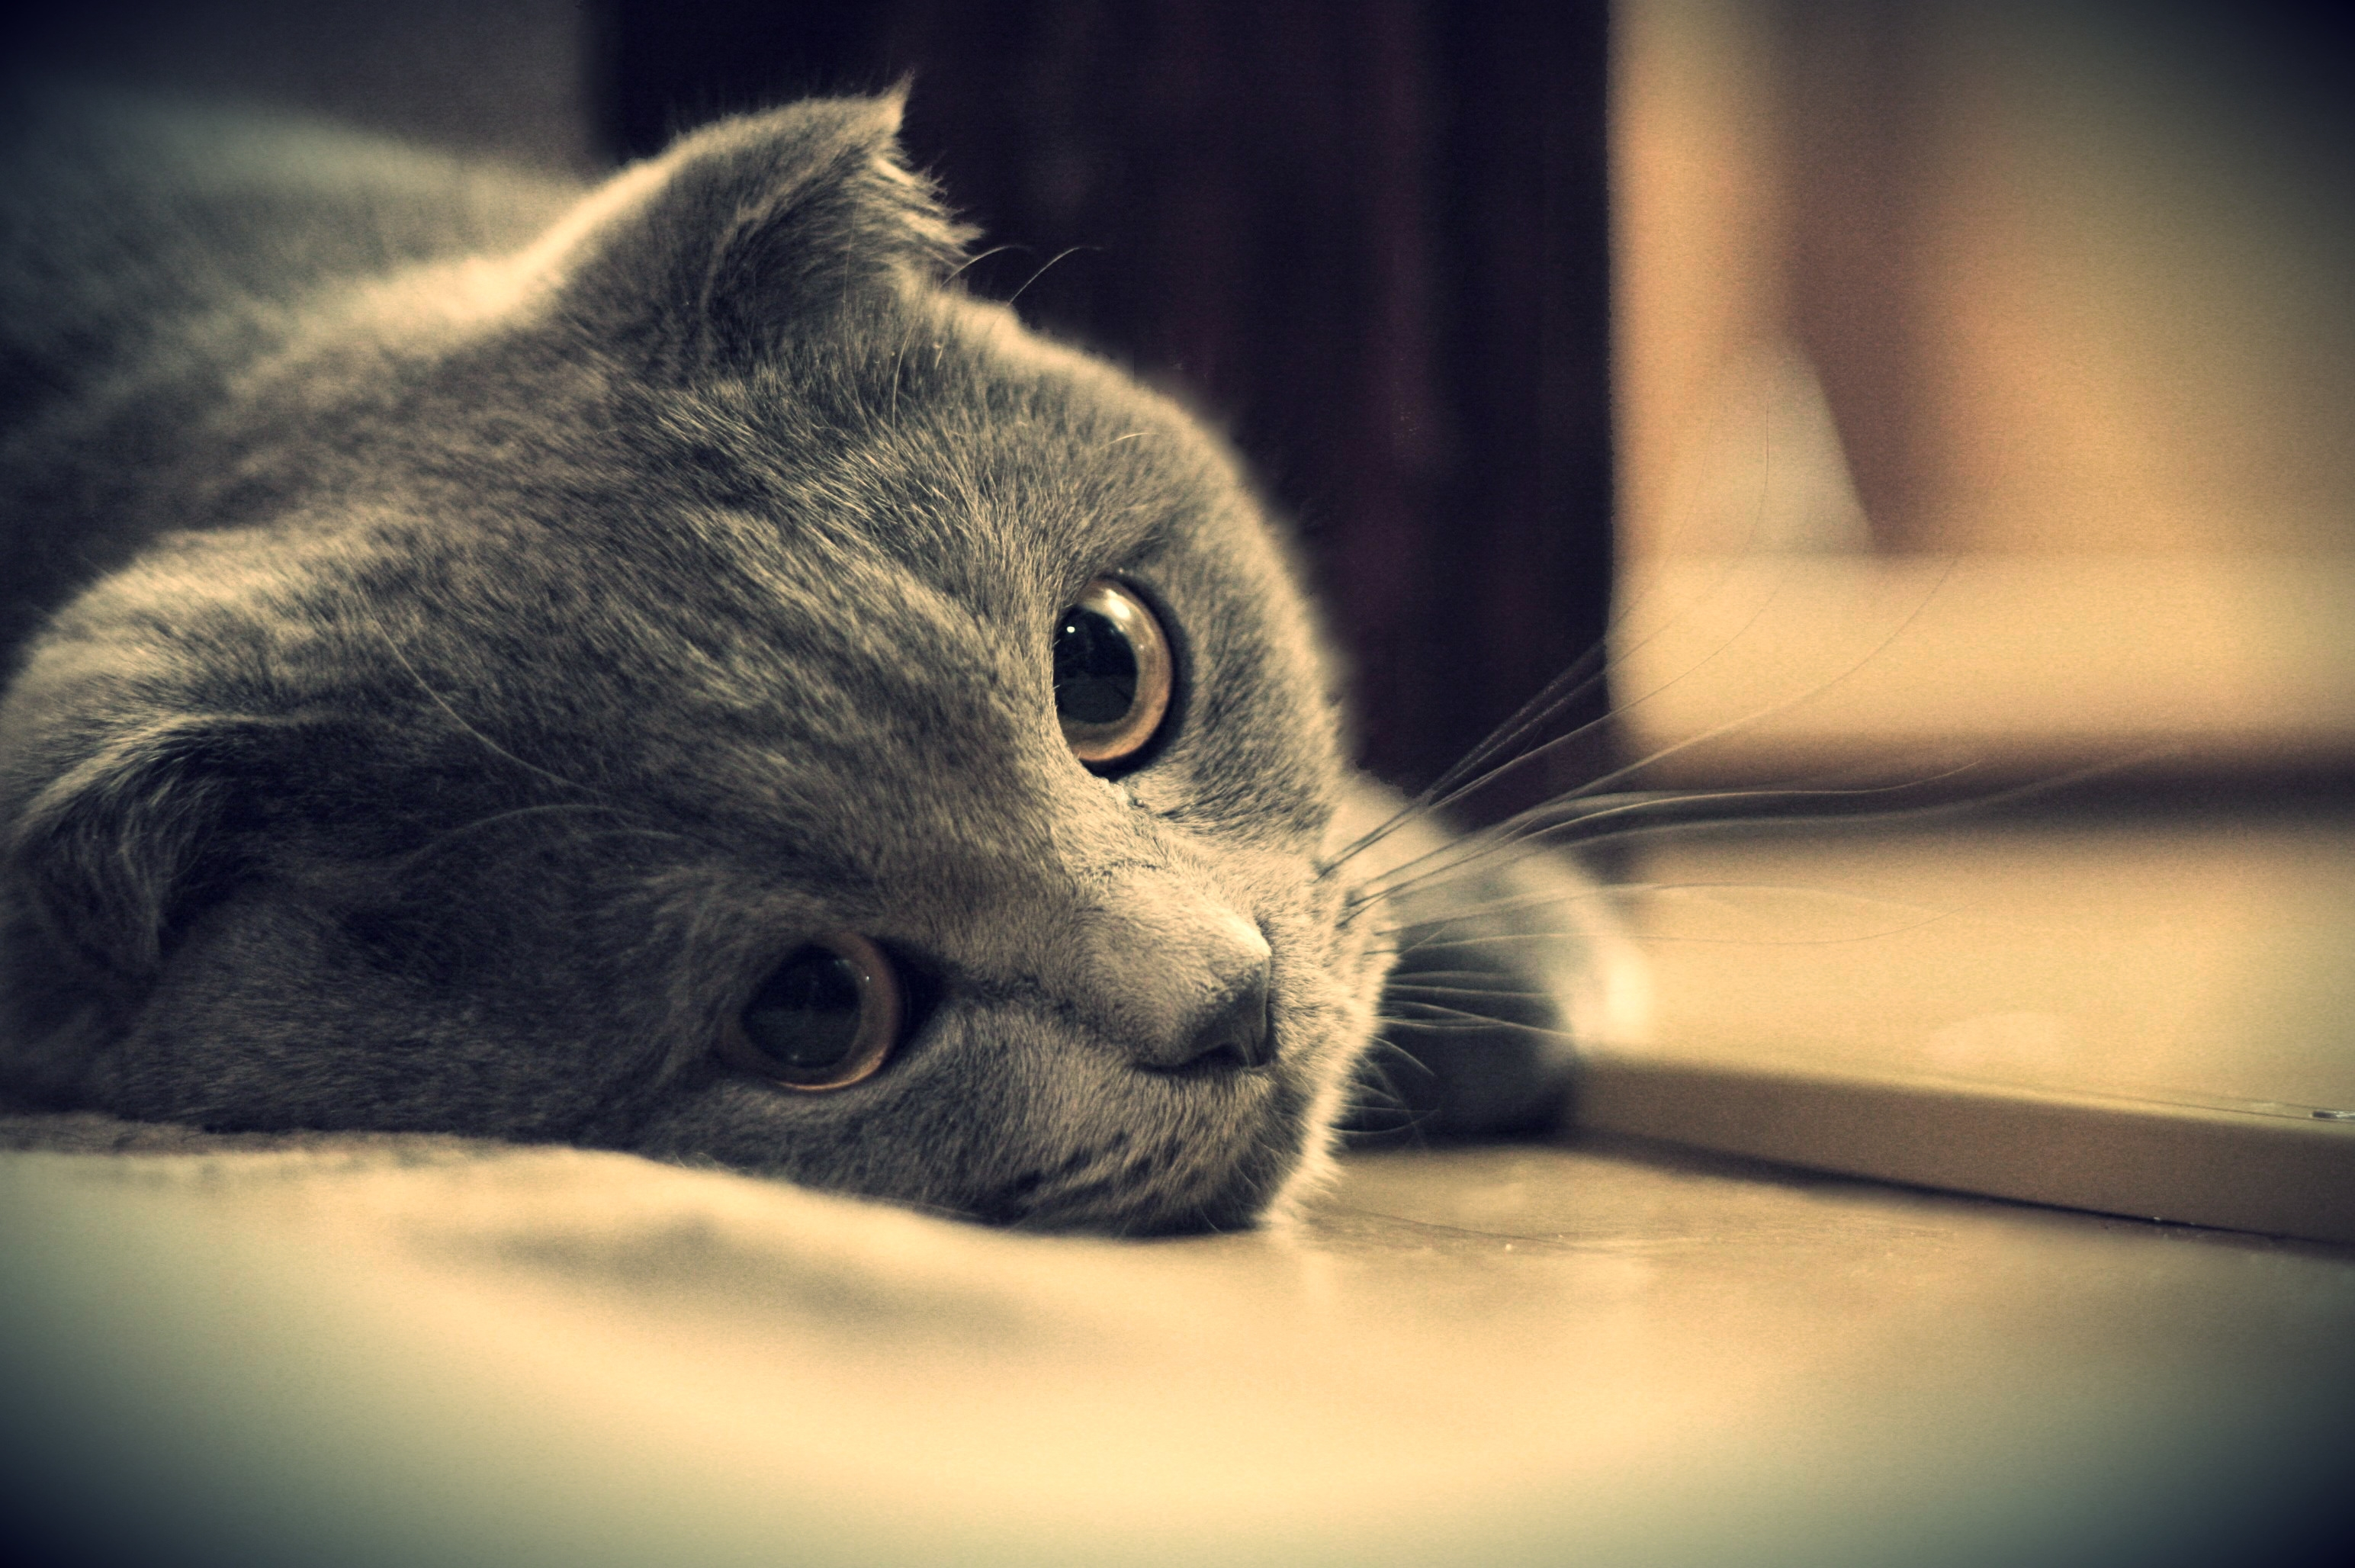 108130 download wallpaper Animals, Cat, Briton, Kote, Grey, Eyes, British, Sight, Opinion screensavers and pictures for free